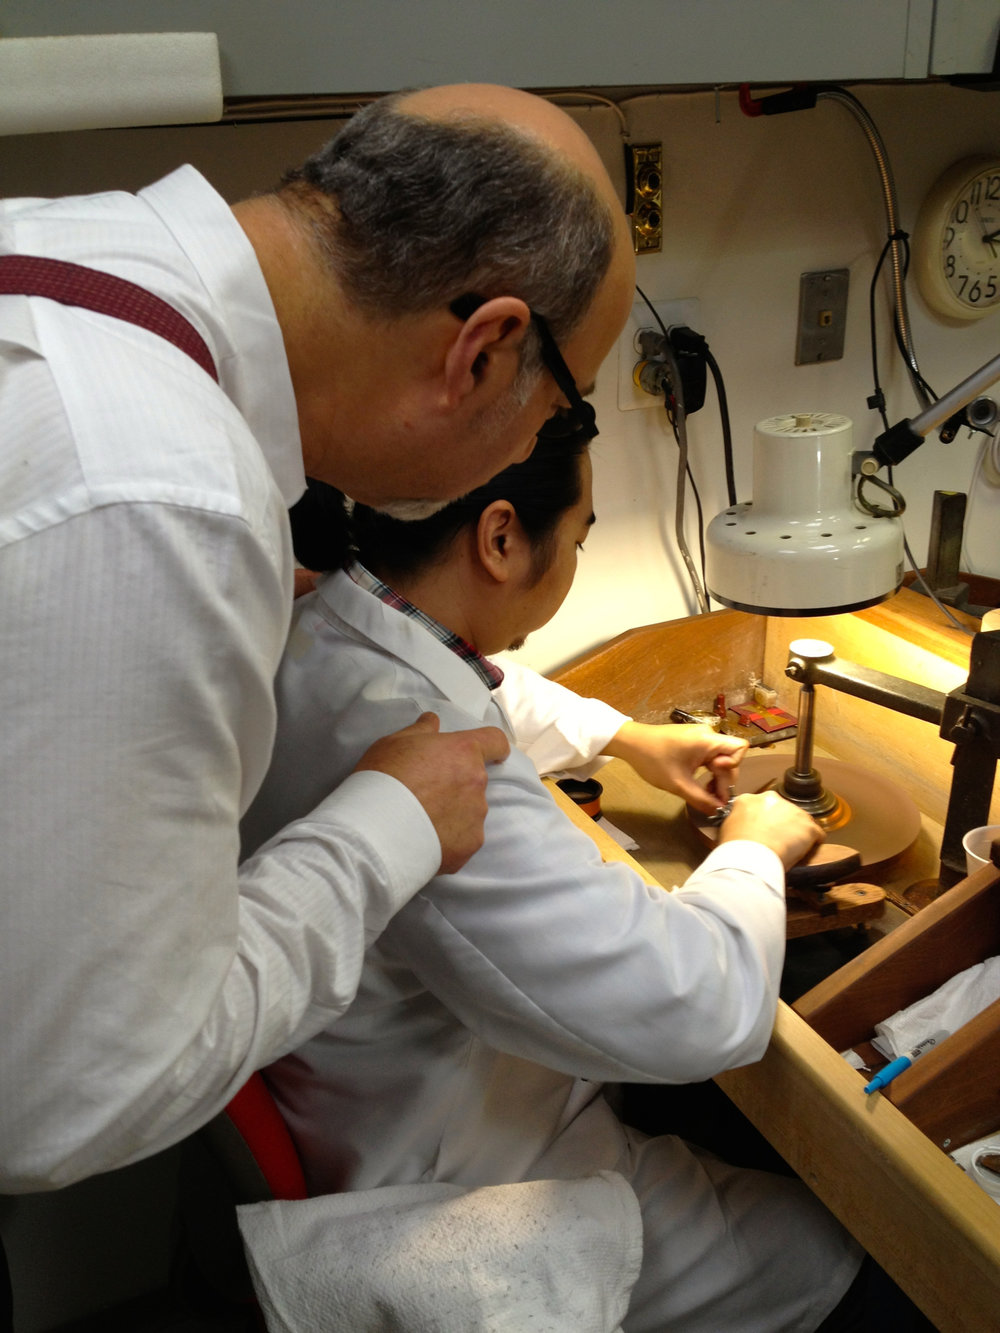 RIchard Orbach and Mr. Shin, gem polisher at work.